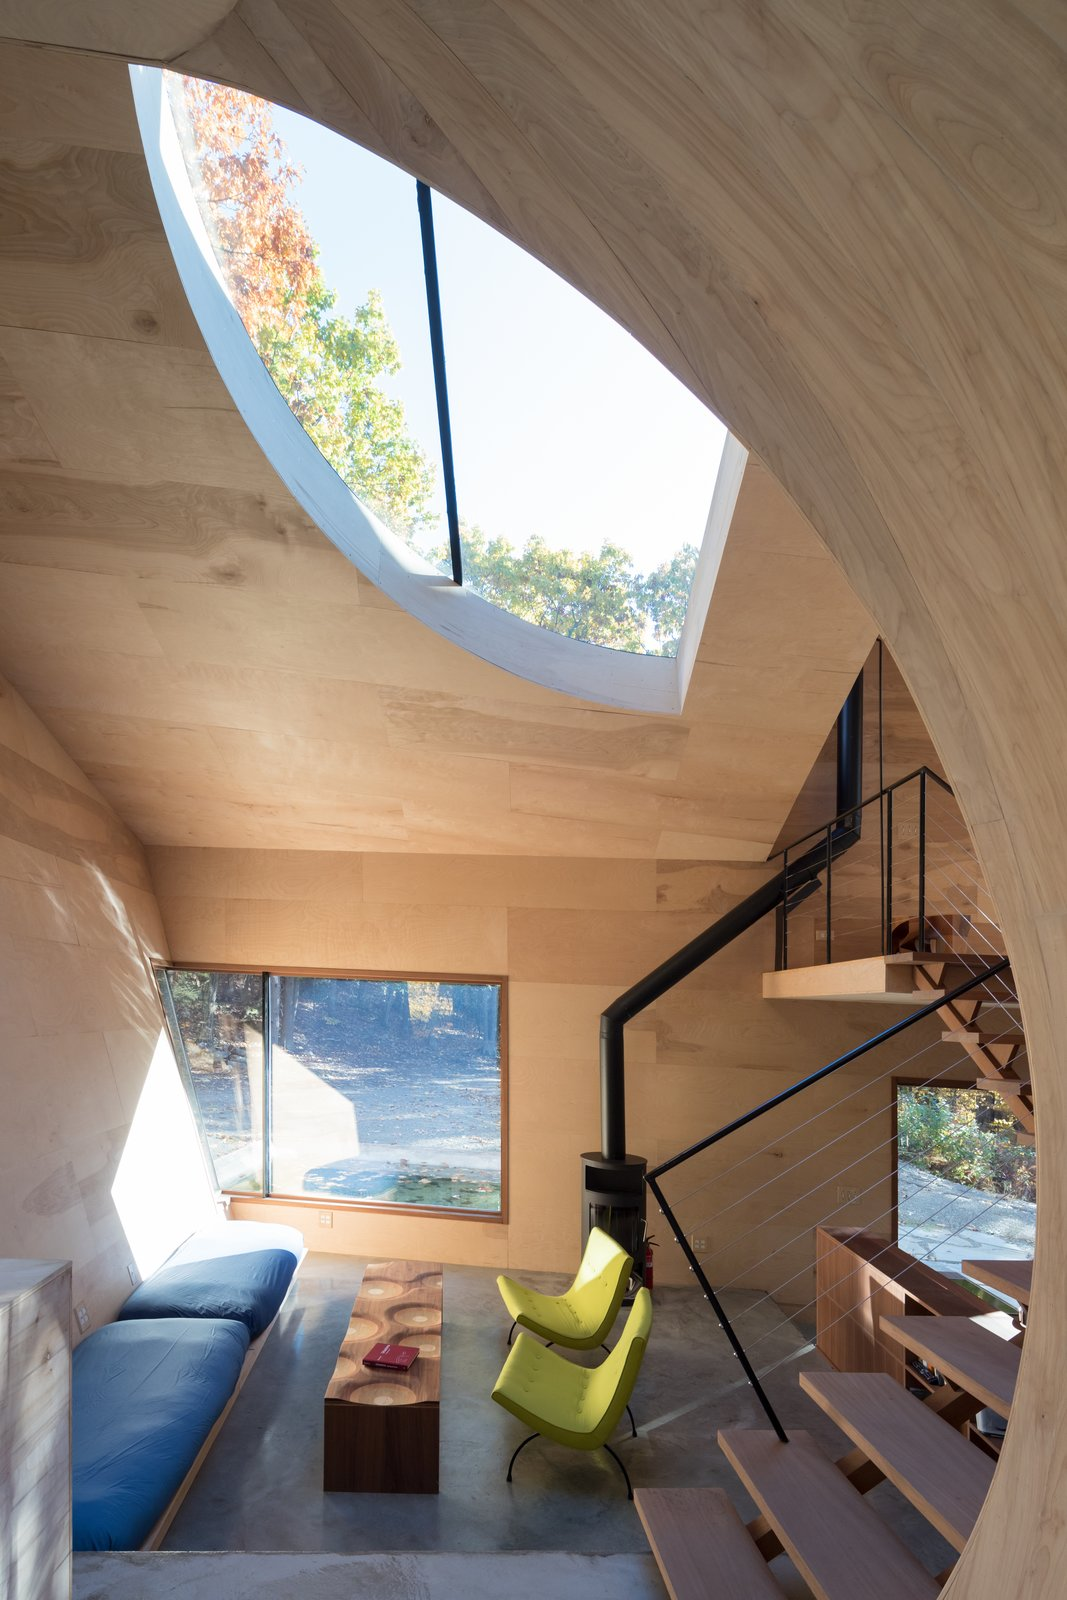 Living, Wood Burning, Coffee Tables, Bench, Chair, and Concrete Ex of In House by Steven Holl Architects, Interior, Living   Best Living Bench Wood Burning Photos from The Compact, Solar-Powered Ex of In House Sits Lightly Upon the Land